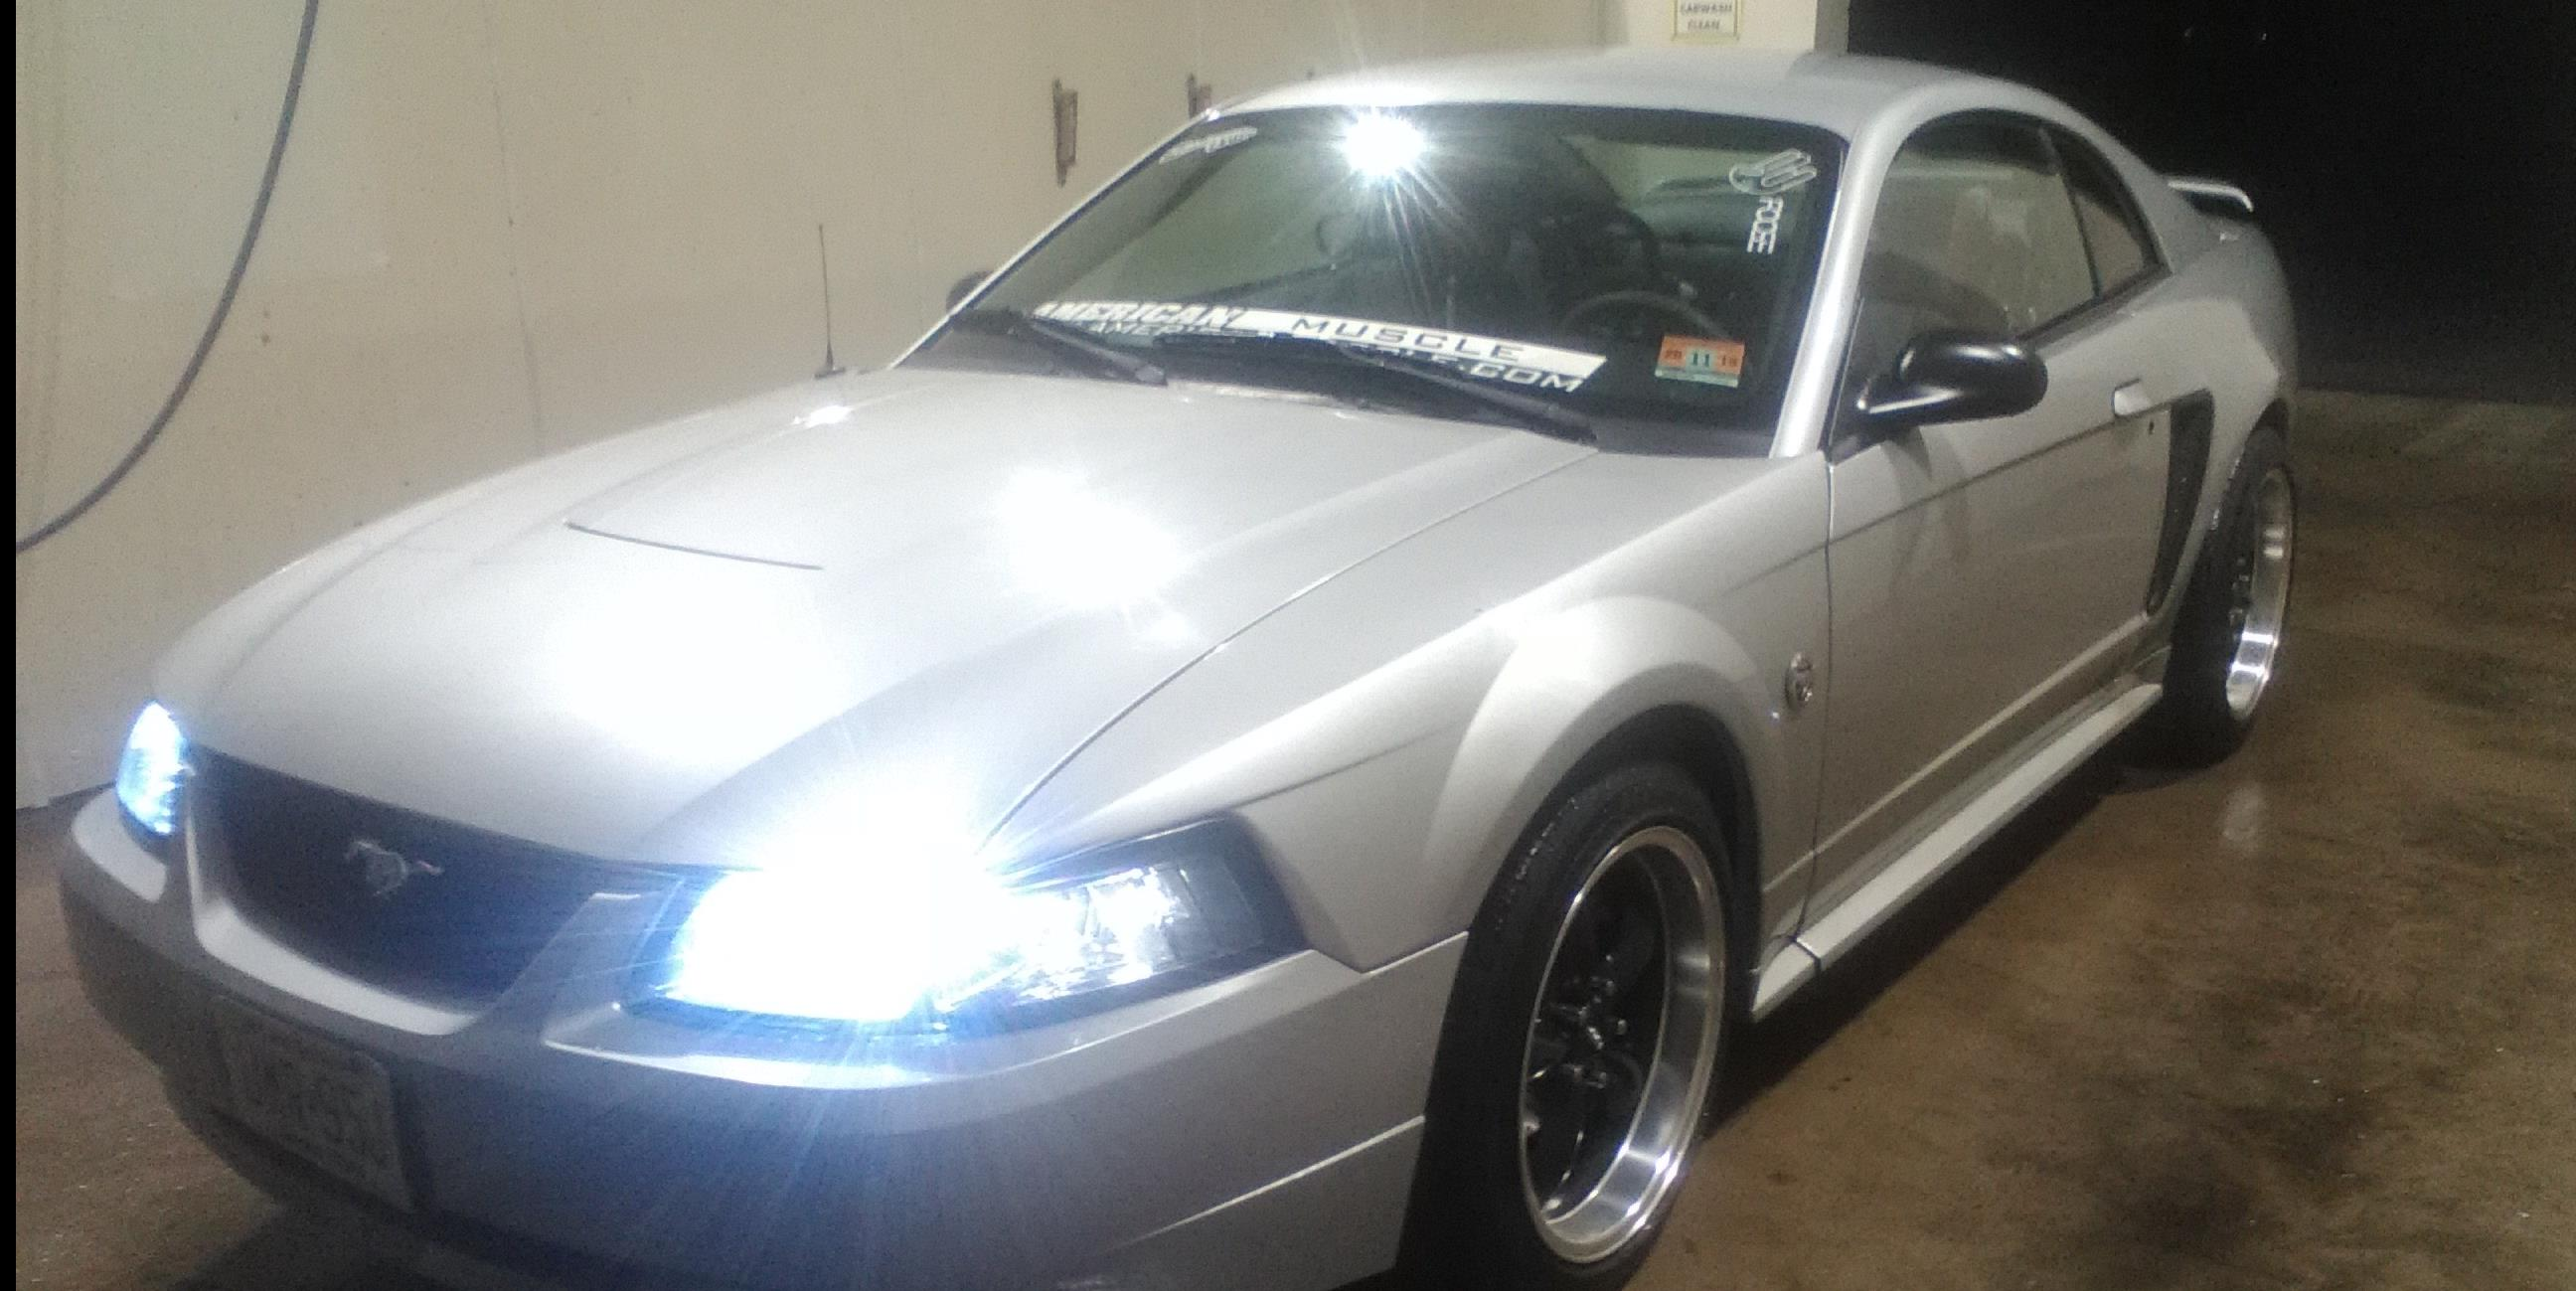 04 Mustang V6 3 9 2004 Ford Mustangcoupe 2d Specs Photos